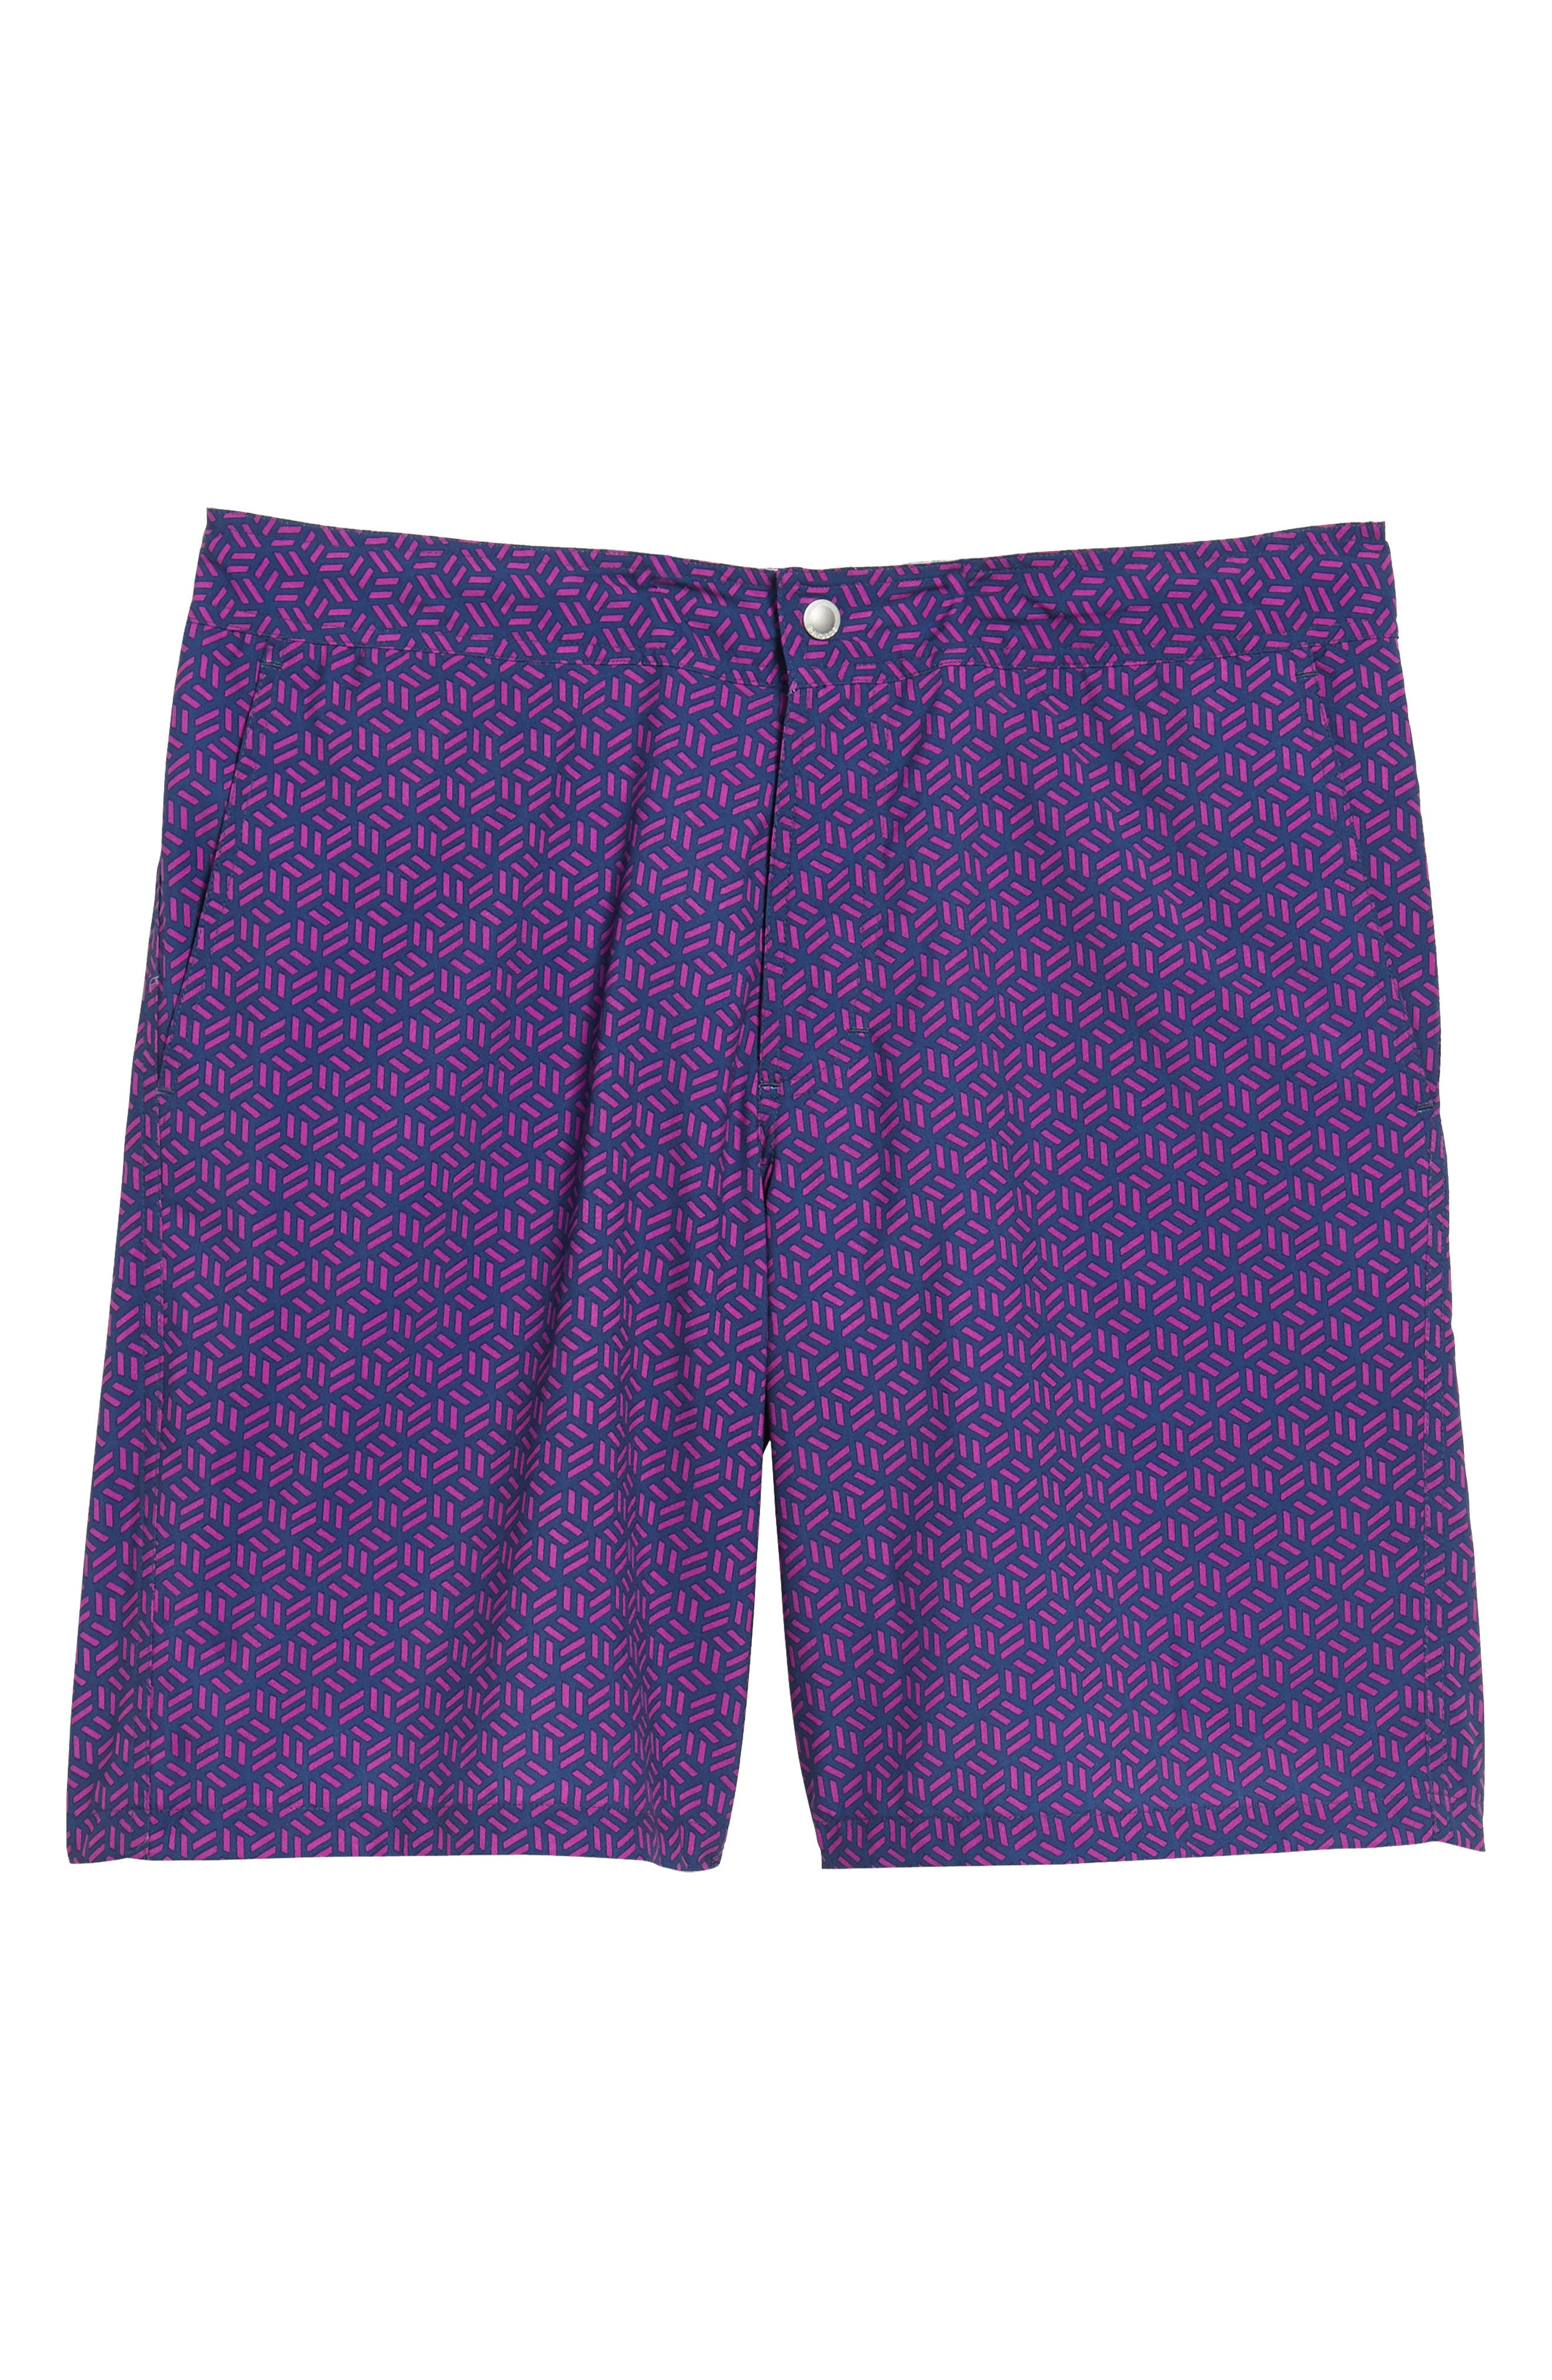 Geo Print 9-Inch Swim Trunks,                             Alternate thumbnail 6, color,                             Cube Geo